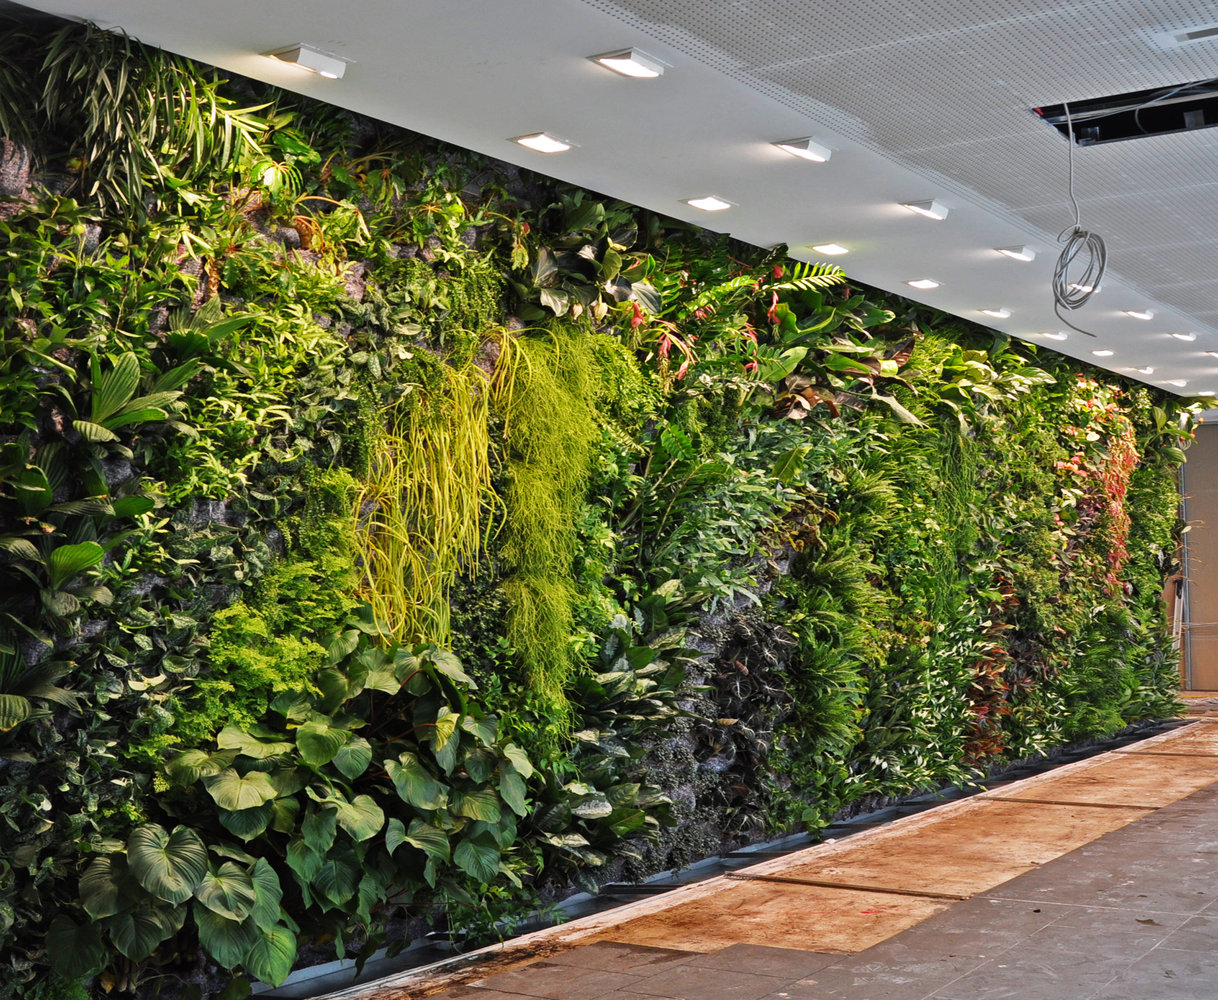 Fronius headquarters wels austria vertical garden for Indoor garden design